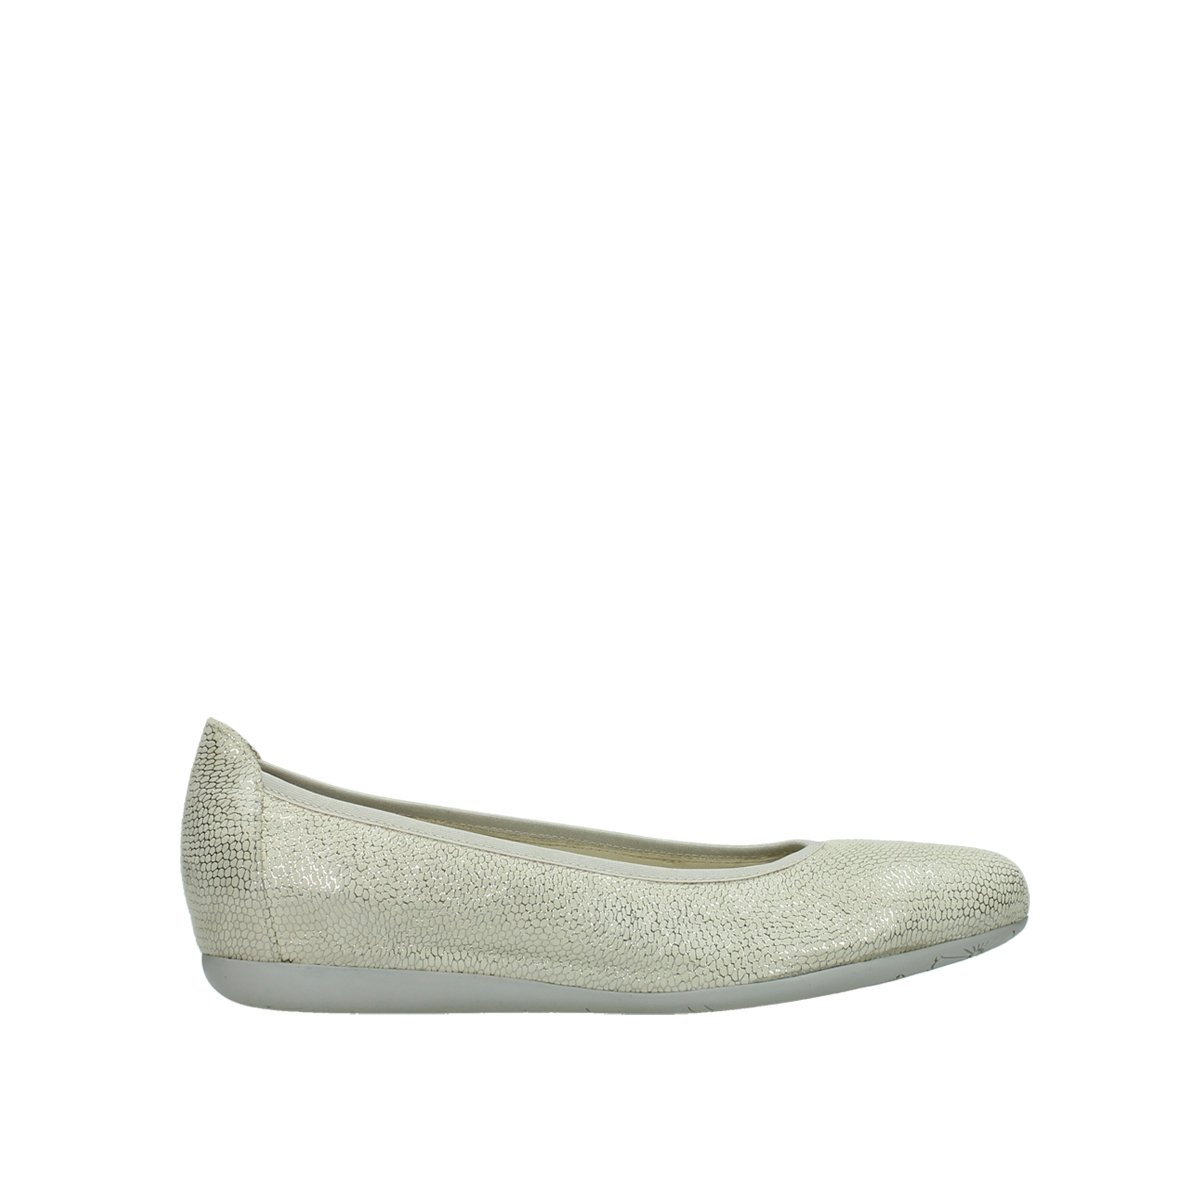 Wolky Comfort Ballet Pumps Tampa B01LXAIC2T 41 M EU|20120 Off-white Leather